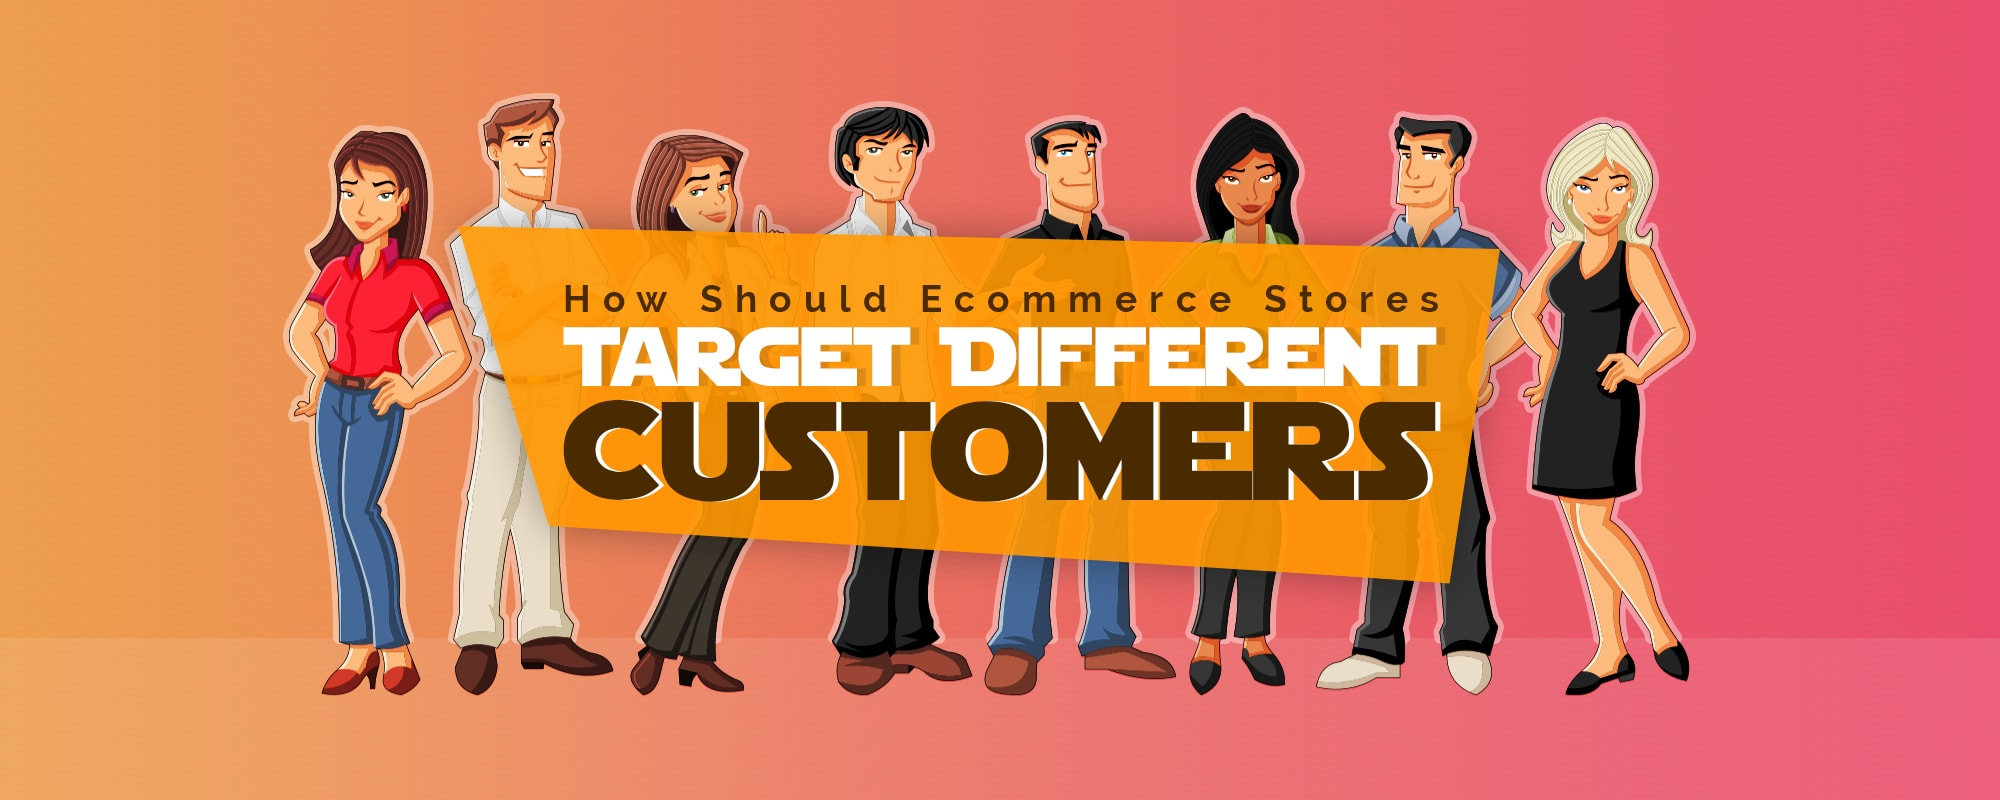 How Should Ecommerce Businesses Approach Different Customer Types